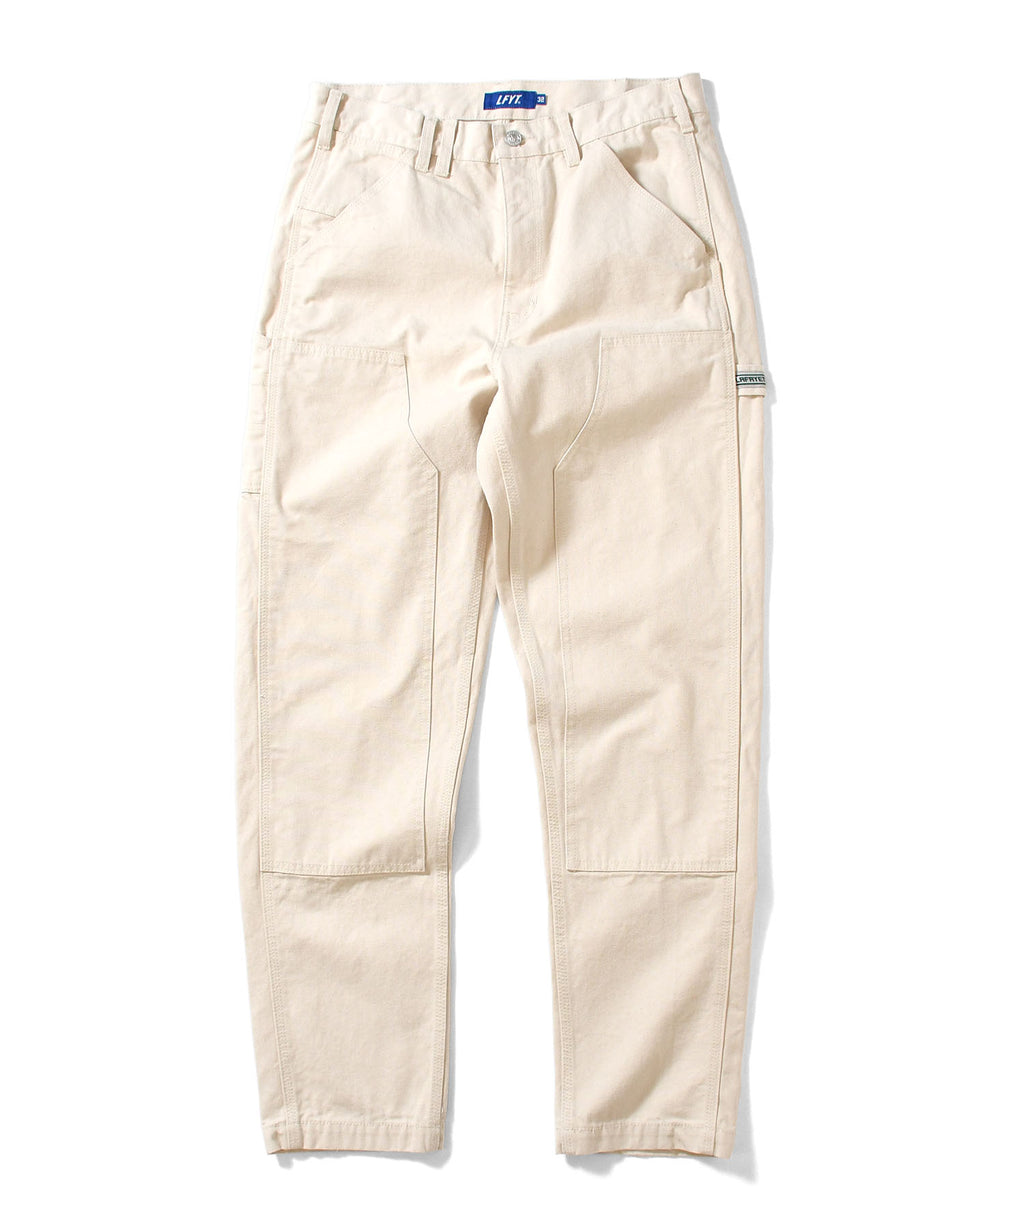 WORKERS DOUBLE KNEE DUCK PAINTER PANTS LA201203 WHITE